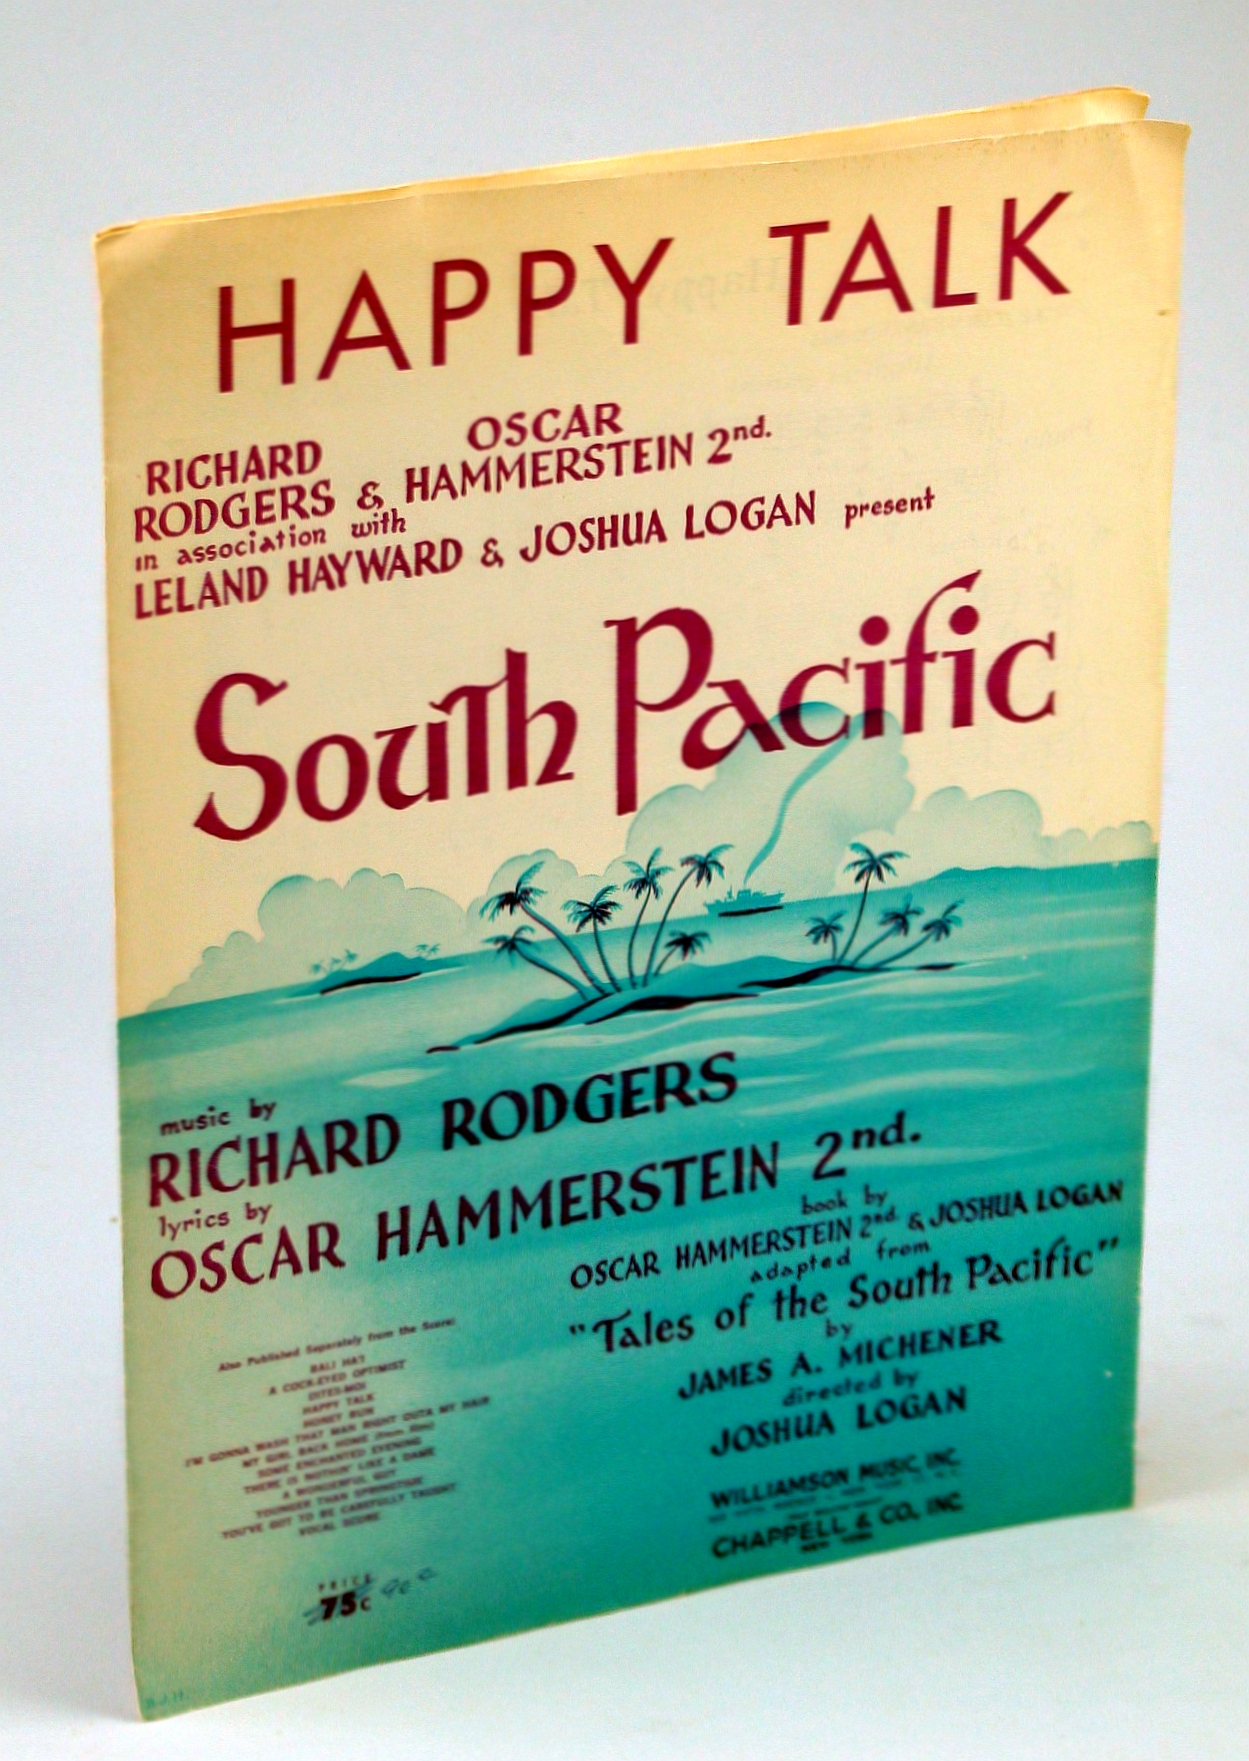 Image for Happy Talk From South Pacific